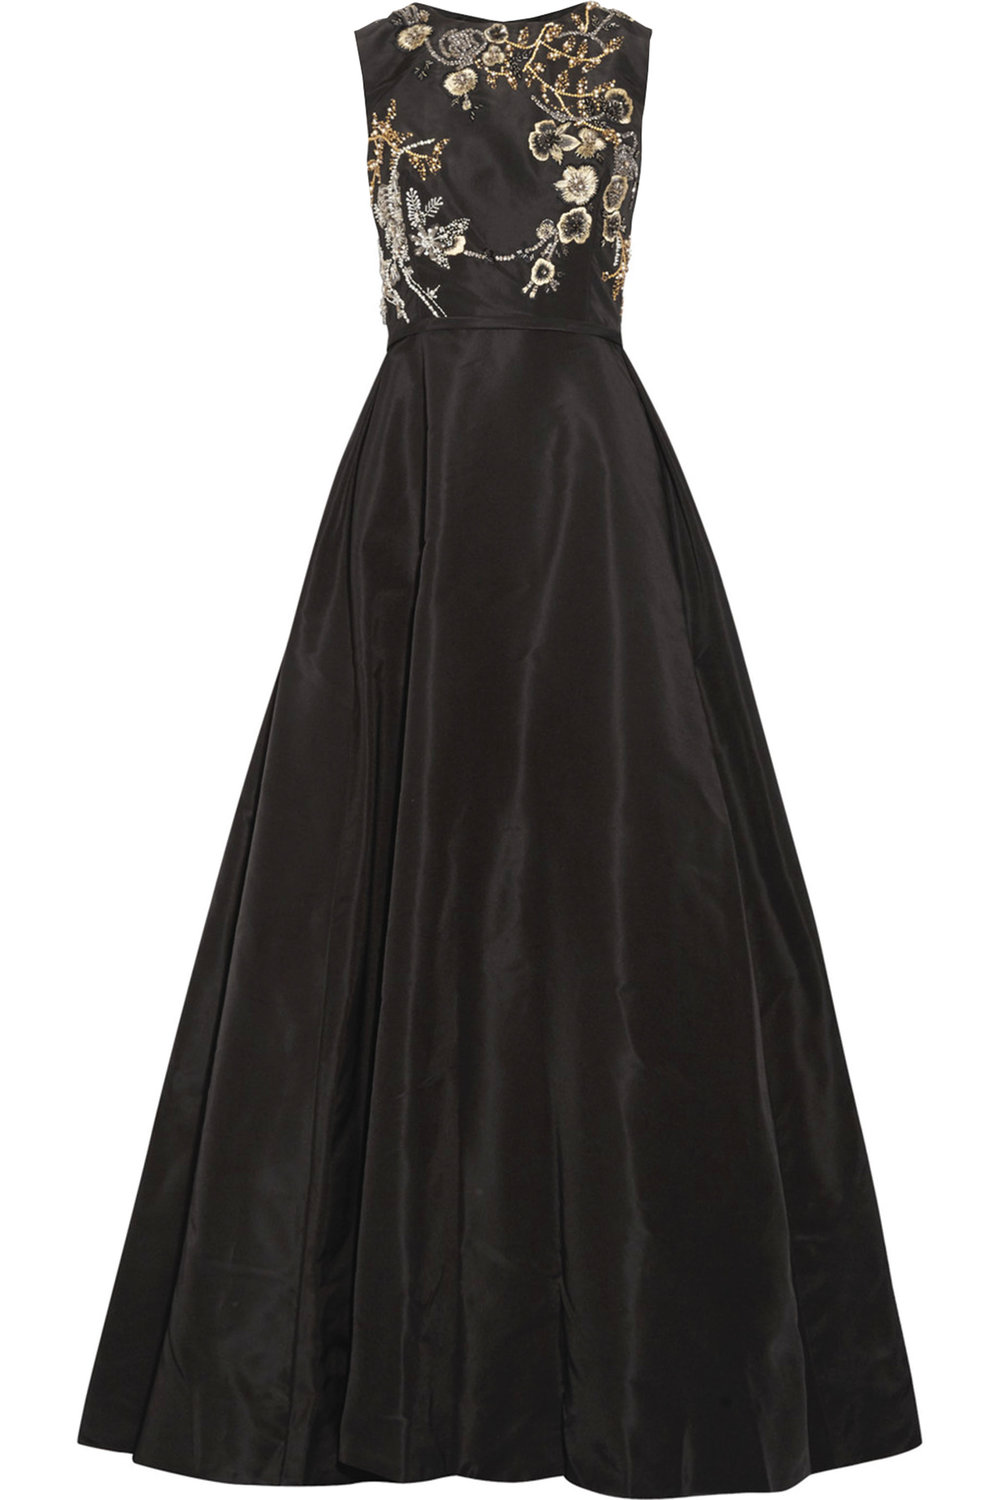 Silk Faille Gown With Crystal-Embroidered Bodice by Oscar de la Renta‭ ‬$12,395,  oscardelarenta.com